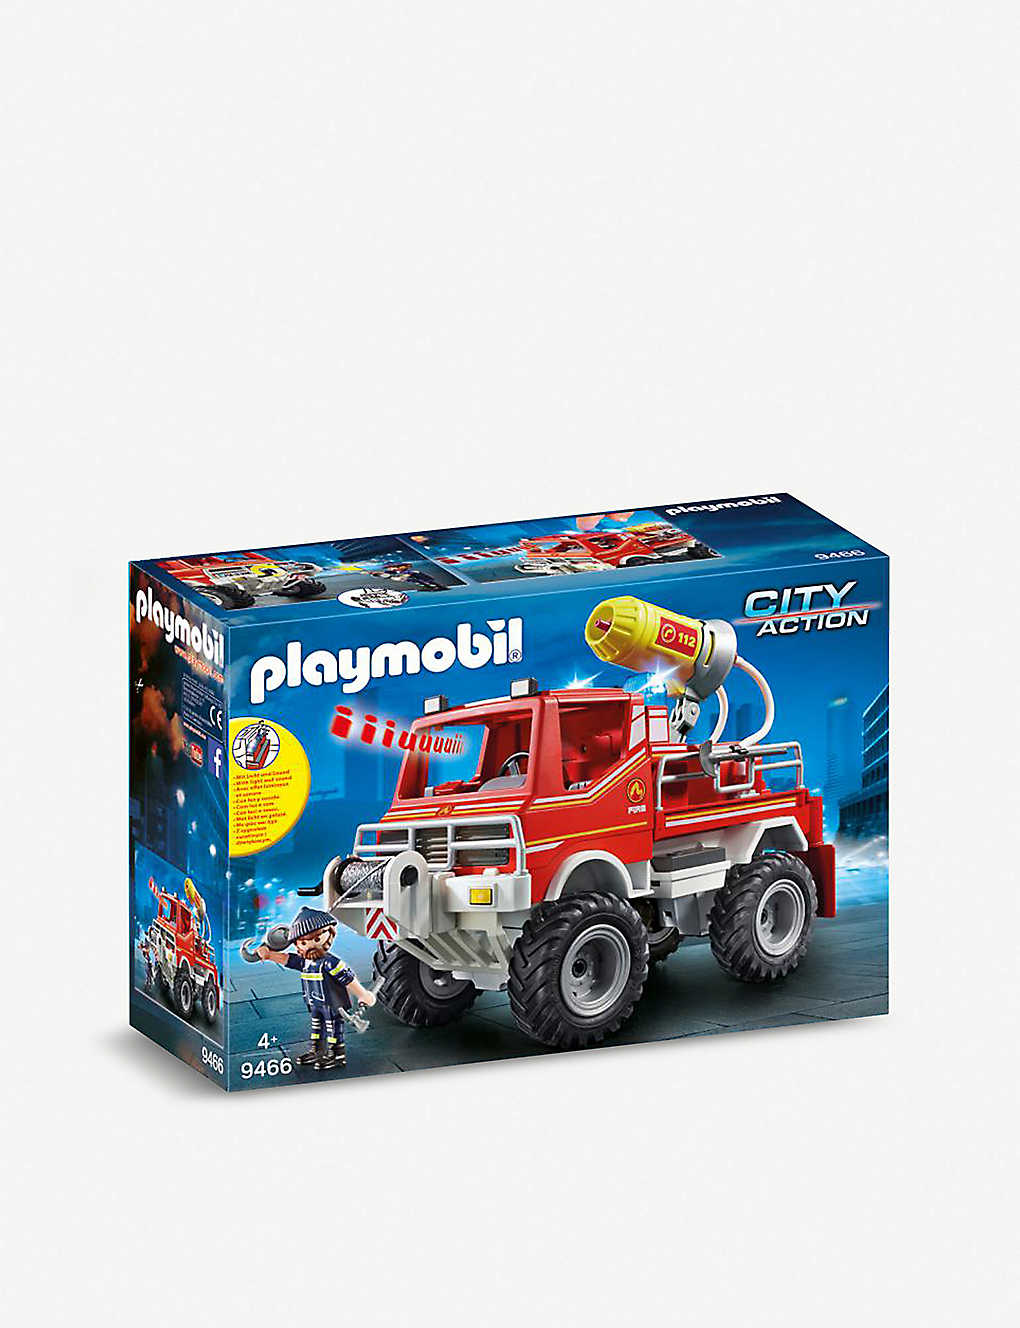 PLAYMOBIL: City Action fire truck